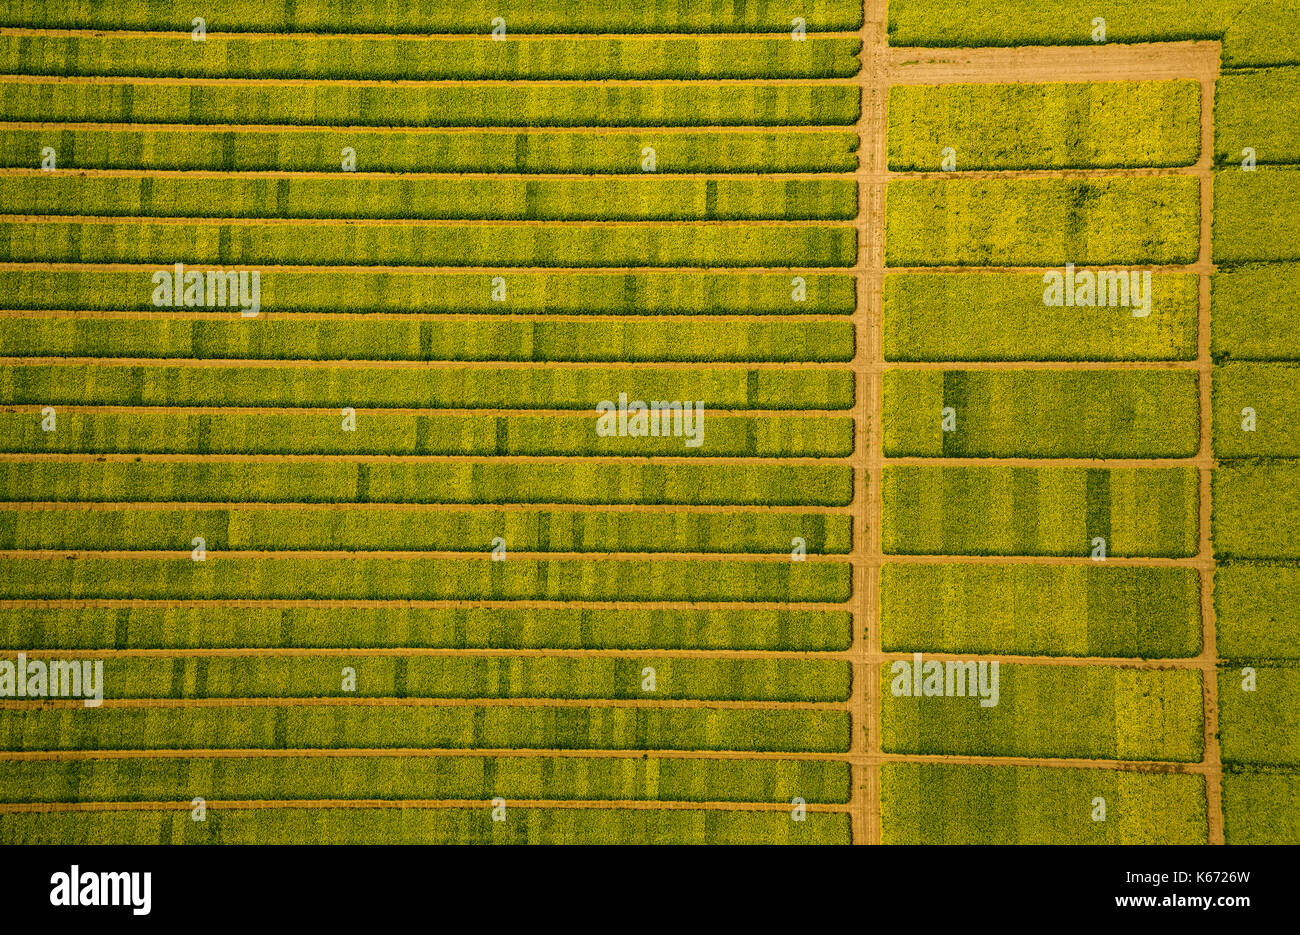 Canola field with divisions for Testsaat, Landwirtschft, agricultural cropland, agricultural test site, Saatoptimierung, - Stock Image